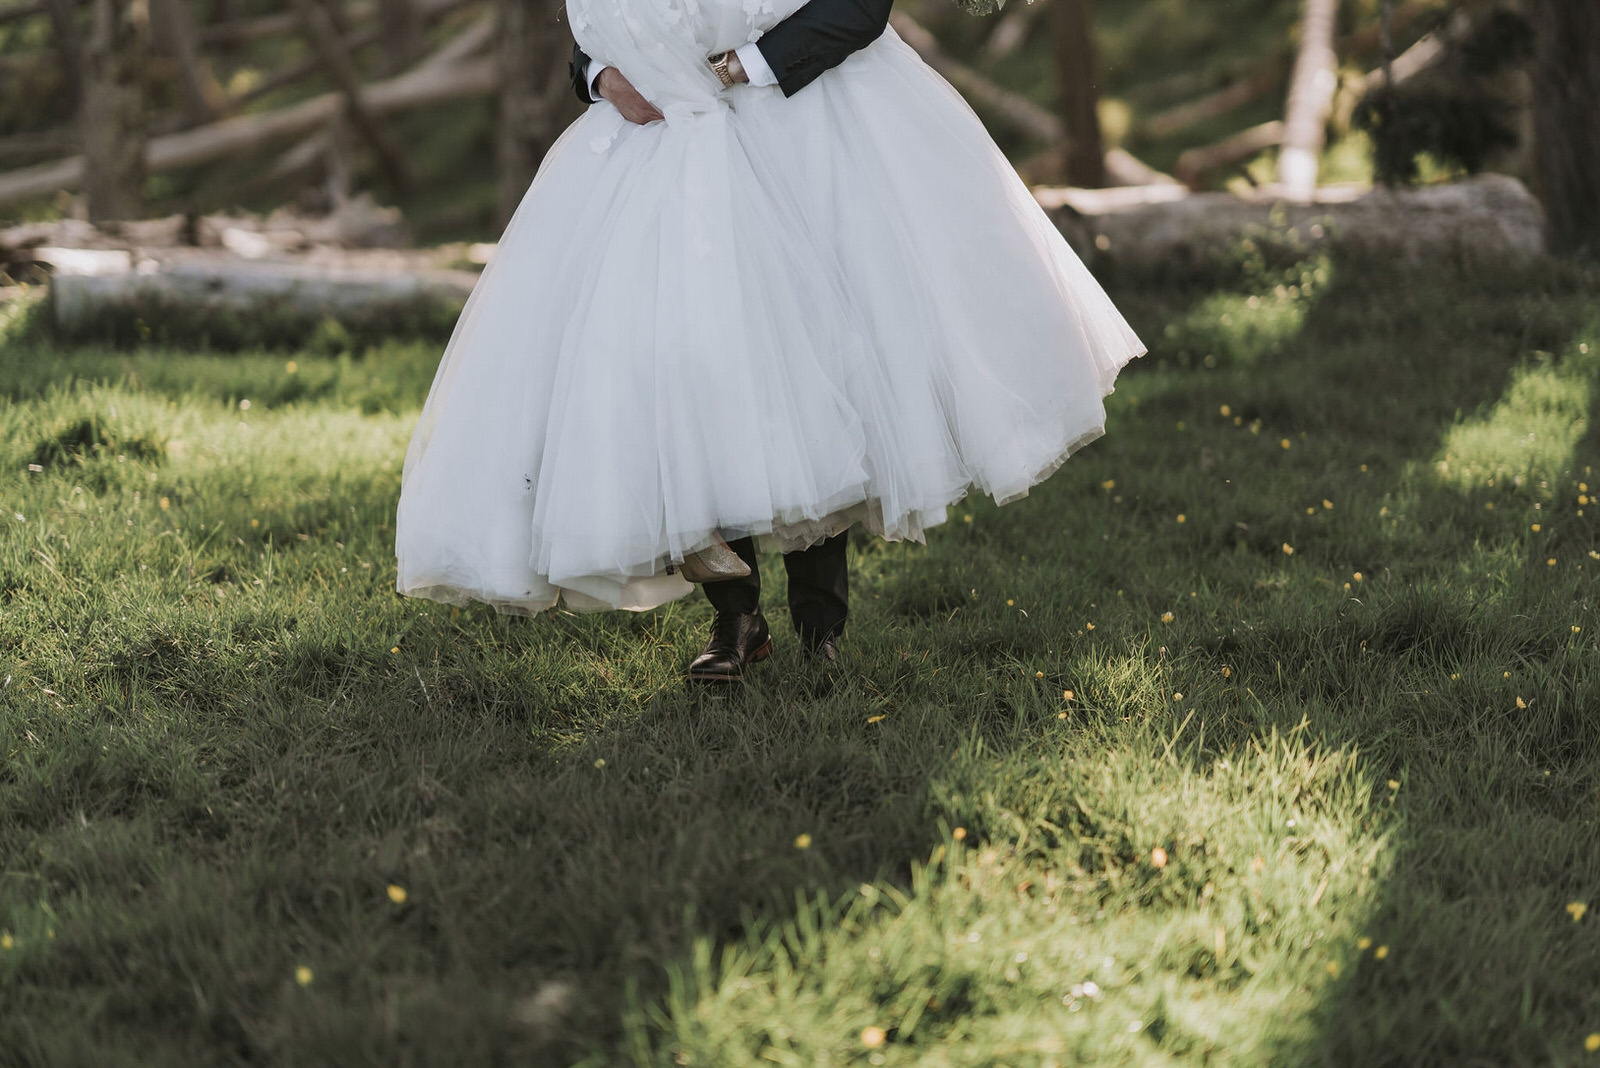 newfound-at-glendowie-auckland-wedding-photographers-139